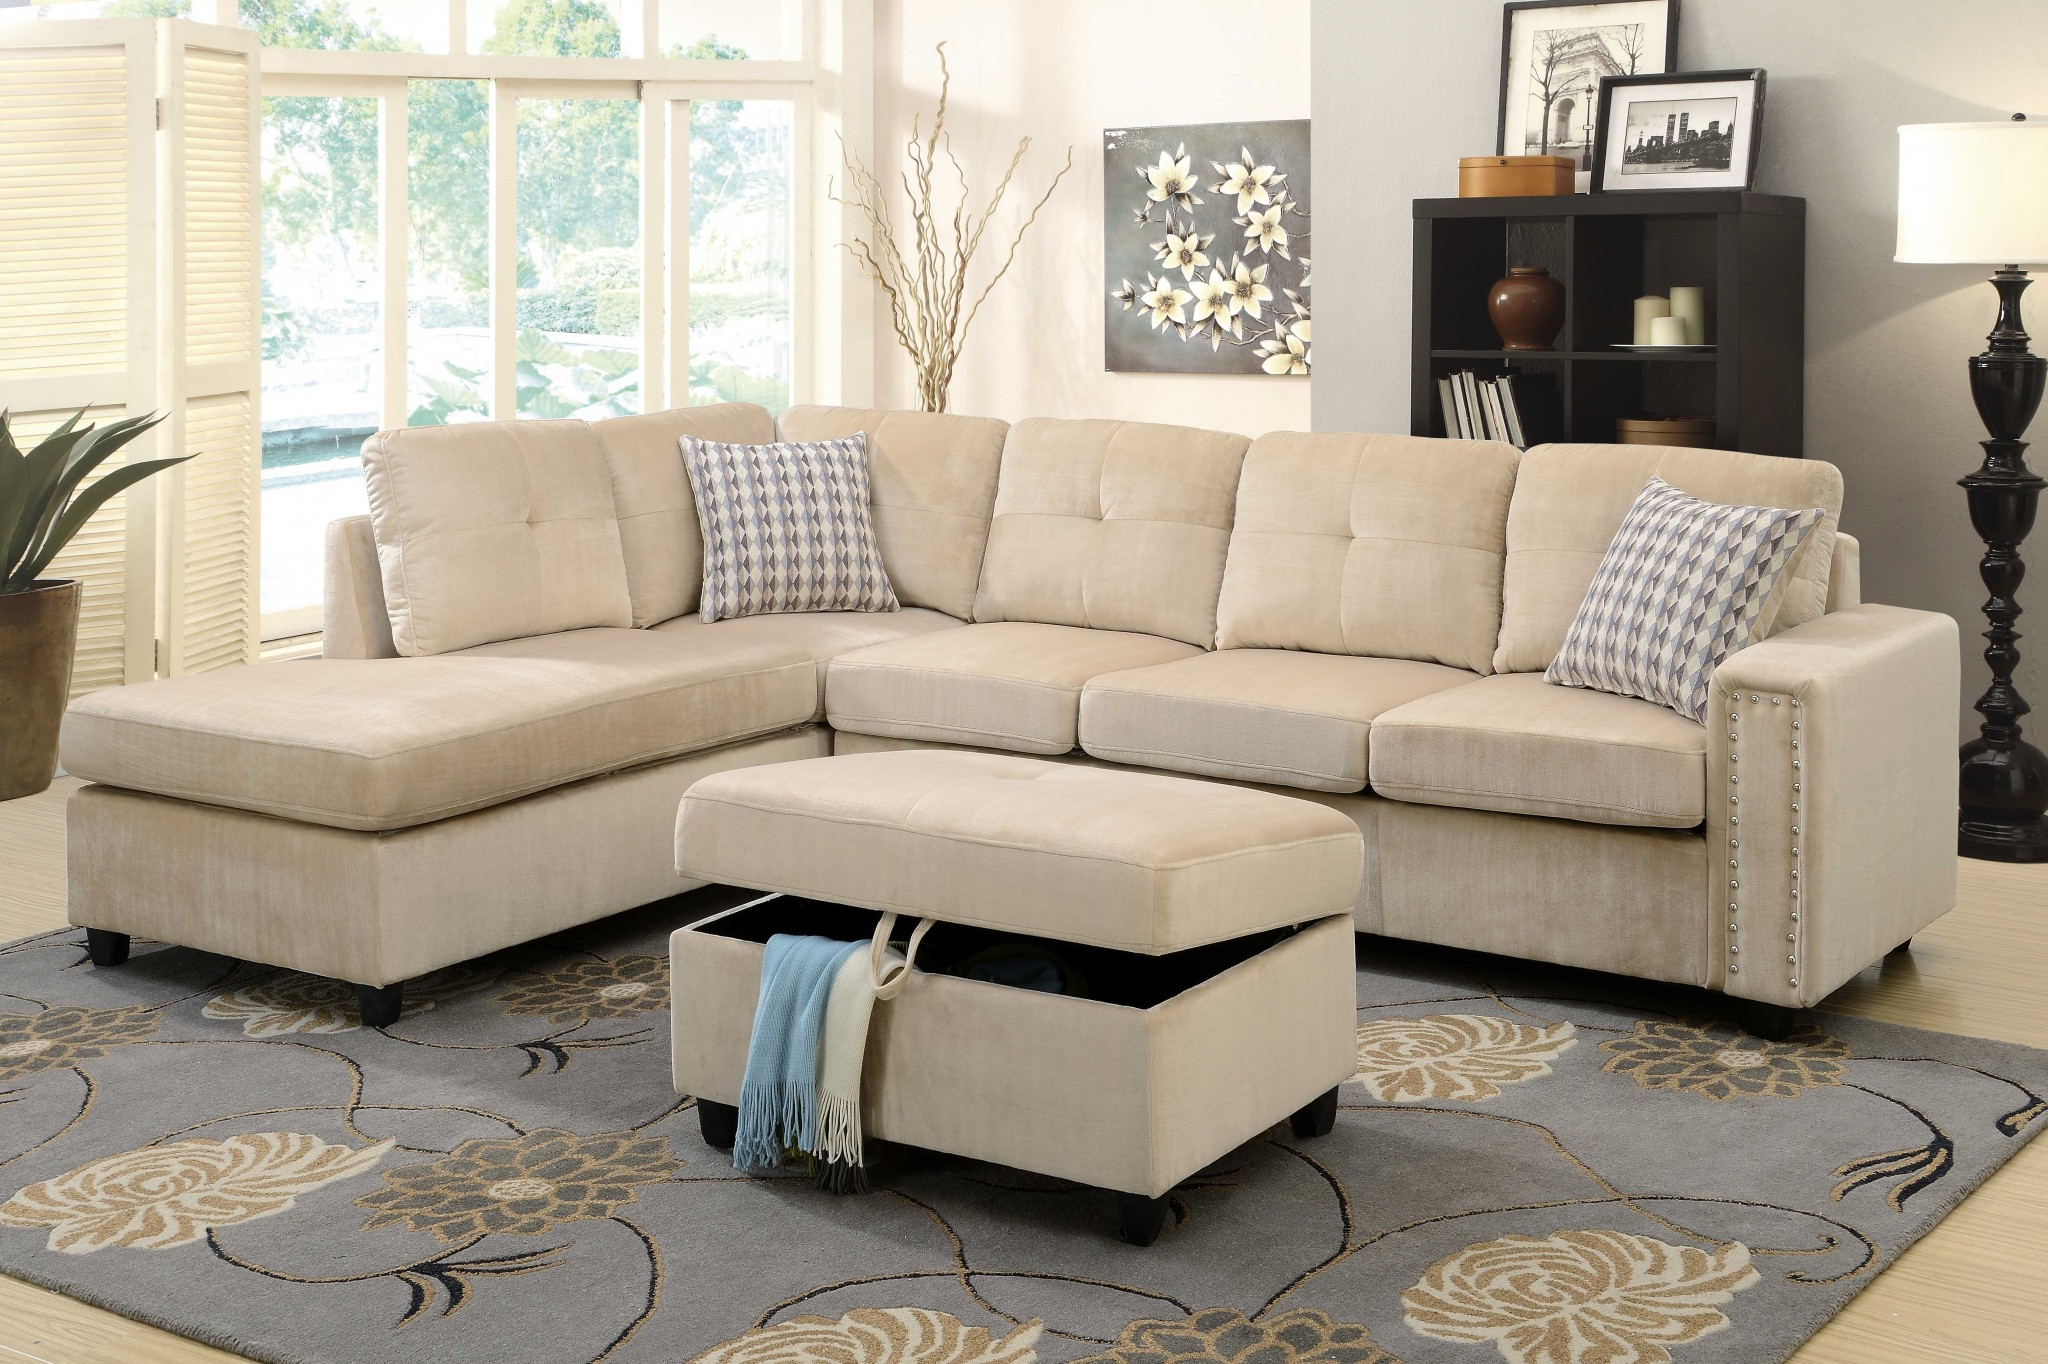 "78"" X 33"" X 36"" Beige Velvet Reversible Sectional Sofa With Pillows"